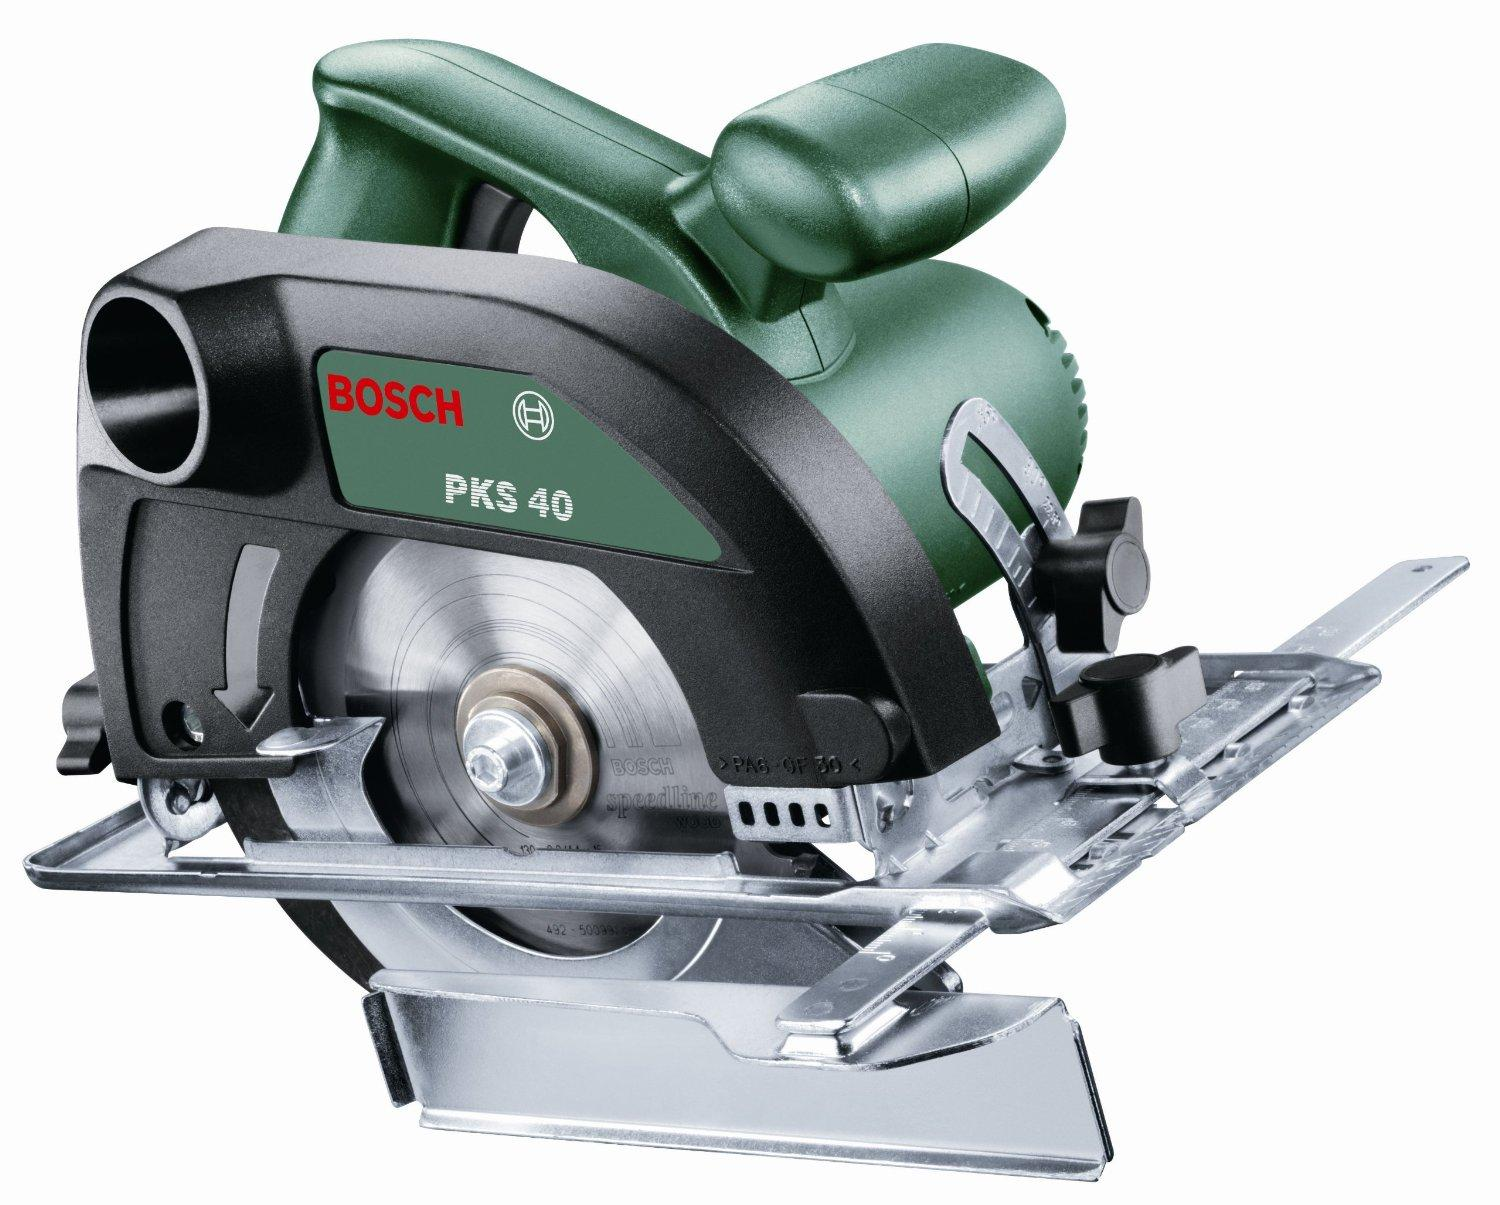 bosch pks 40 circular saw diy tools. Black Bedroom Furniture Sets. Home Design Ideas